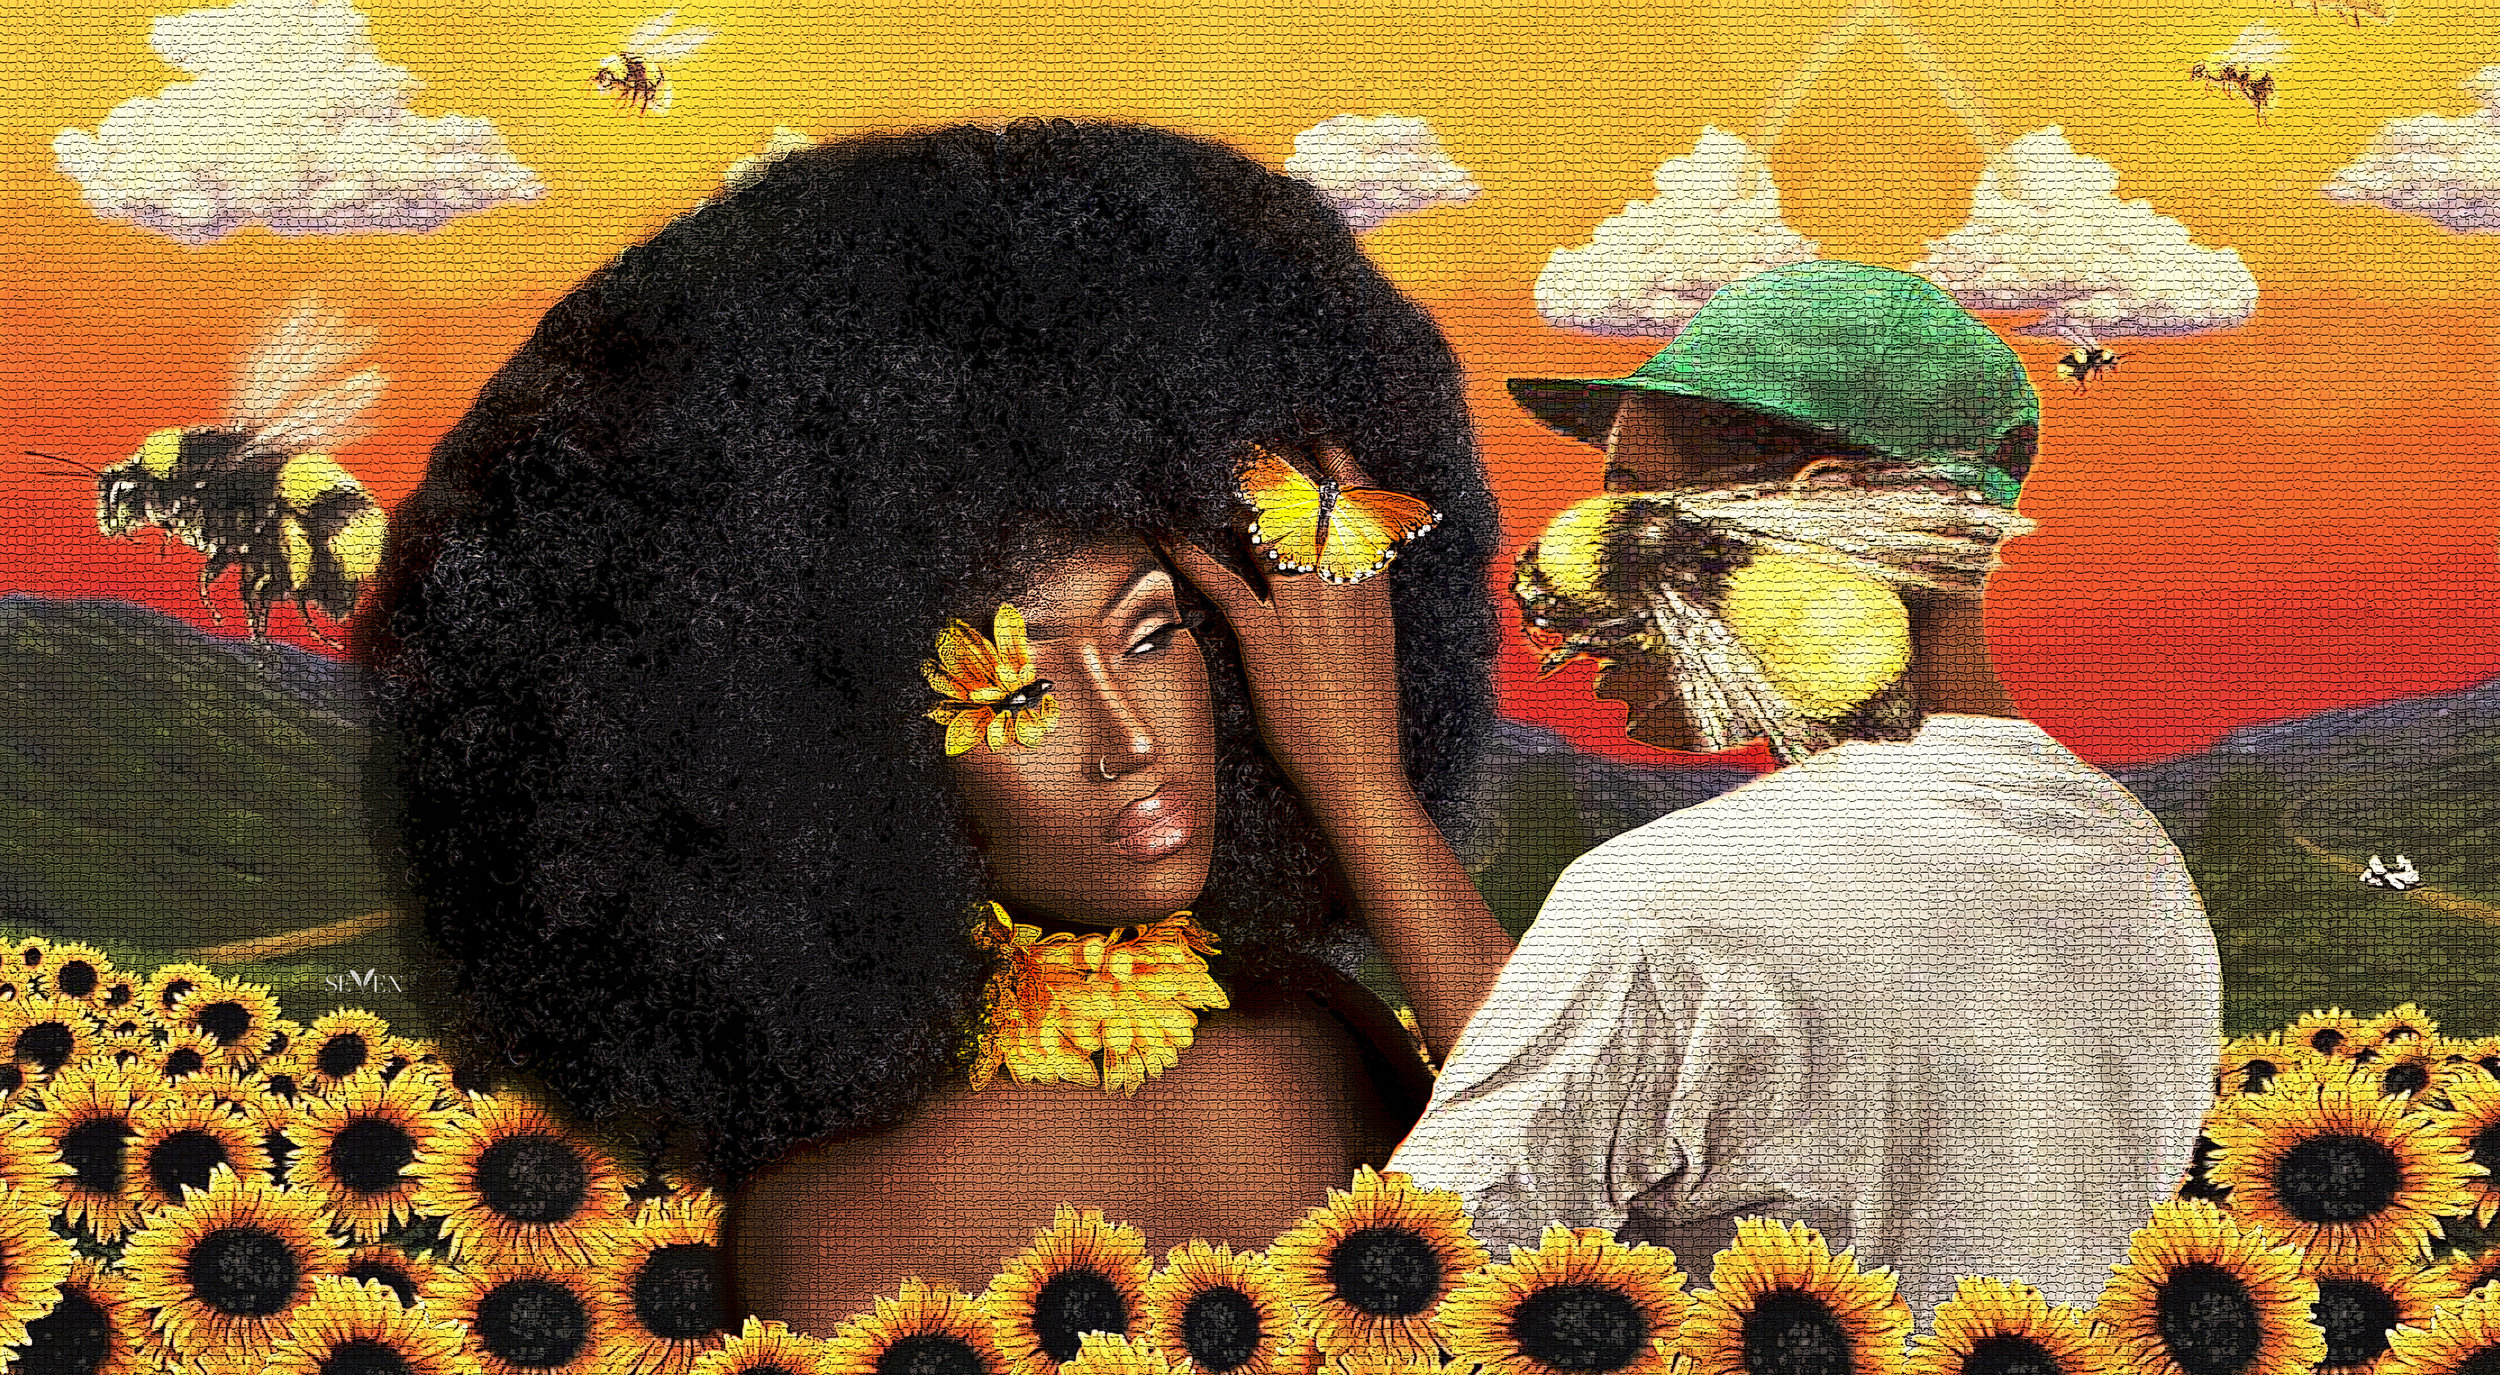 Symone Seven fan art of Tyler the Creator's Flower Boy Album